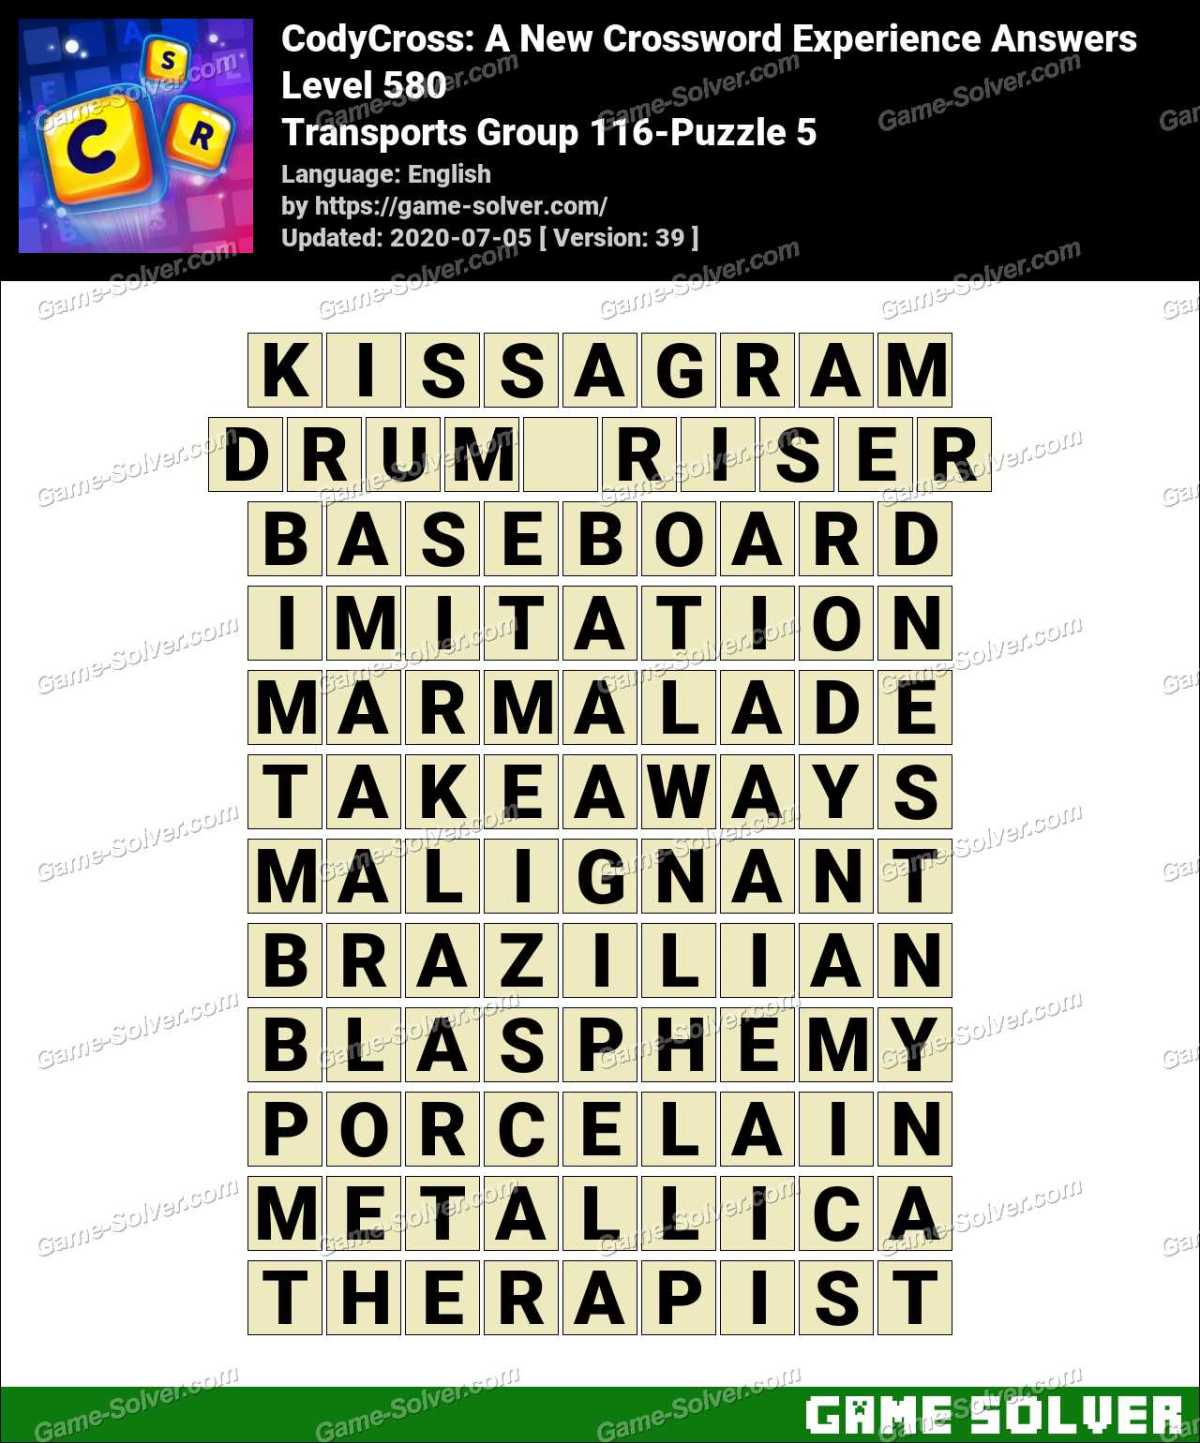 CodyCross Transports Group 116-Puzzle 5 Answers